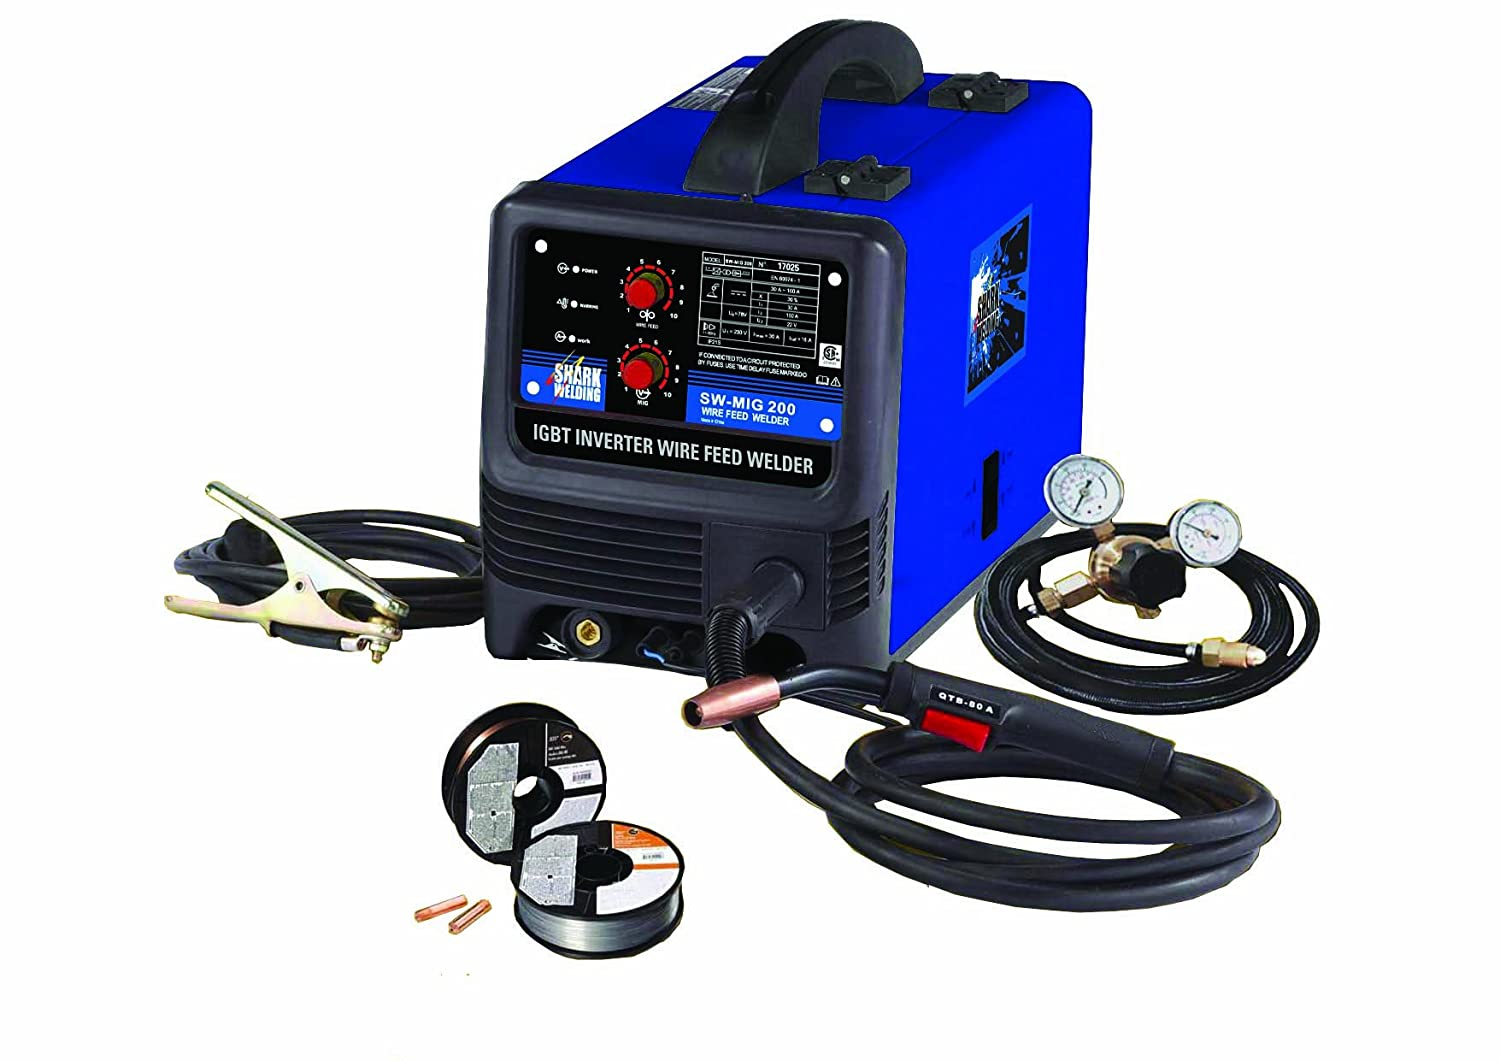 71EO3EzVi3L._SL1500_ shark welding 17025 sw mig 200 welder power welders amazon com 90 Amp Mig Welder at bakdesigns.co